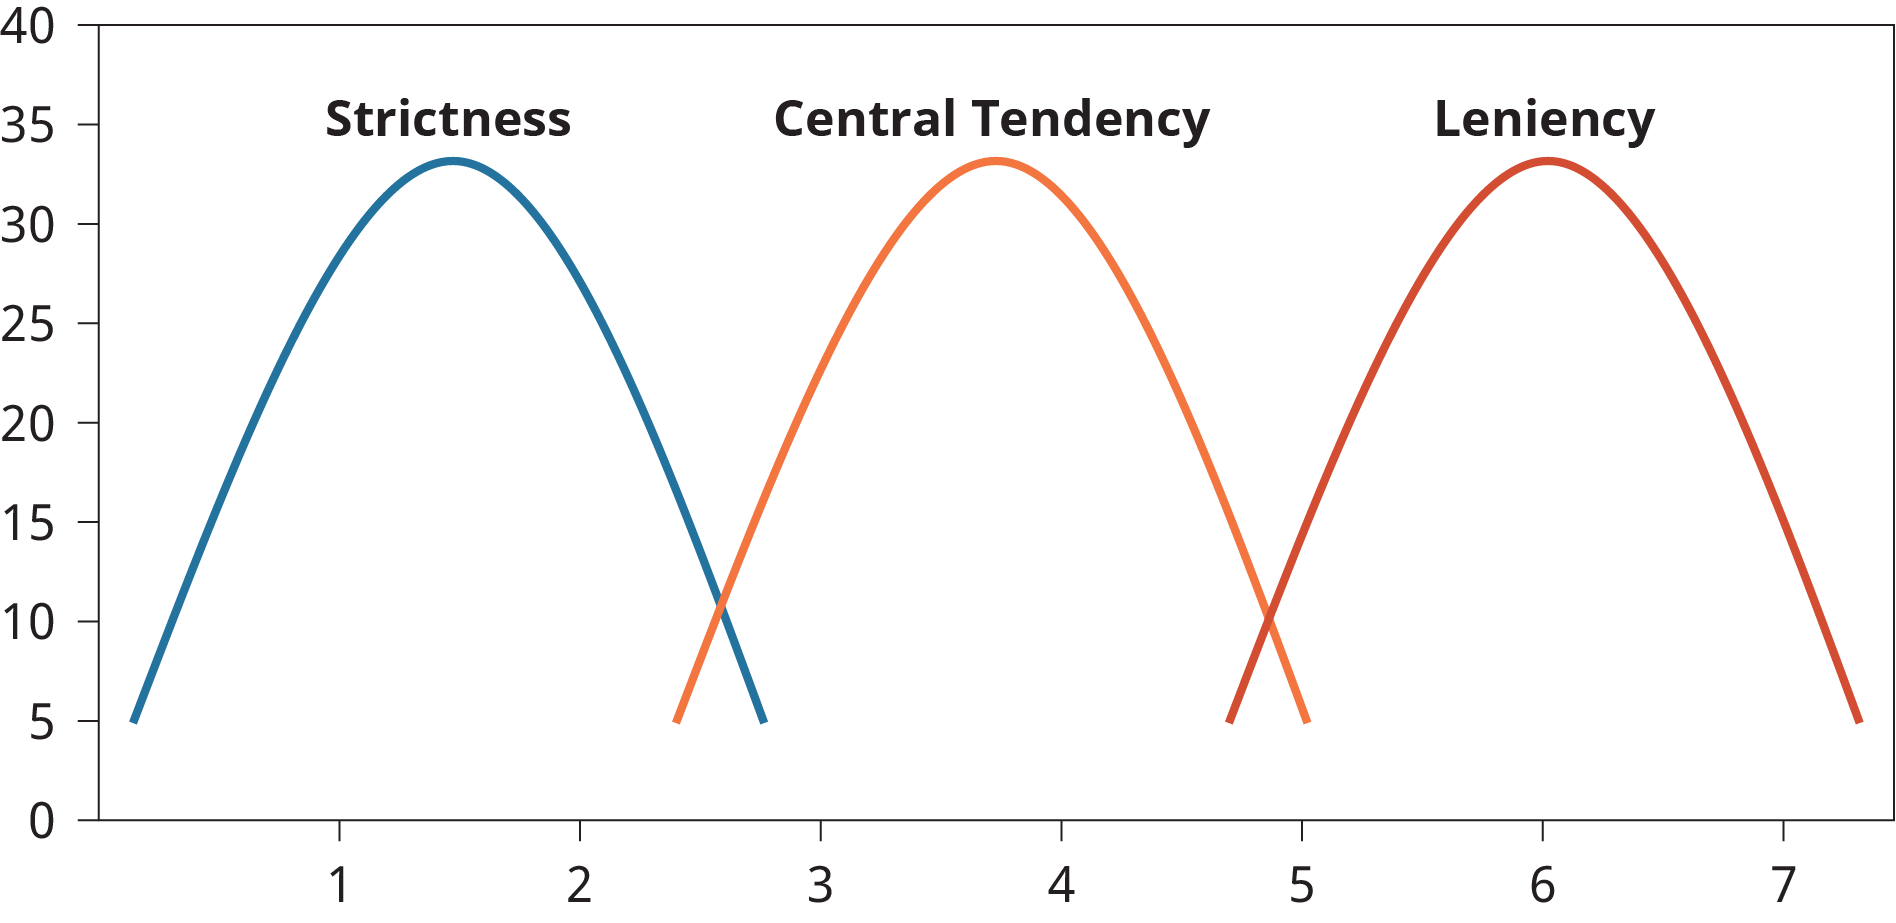 A graph plots strictness, central tendency, and leniency as parabolic curves.